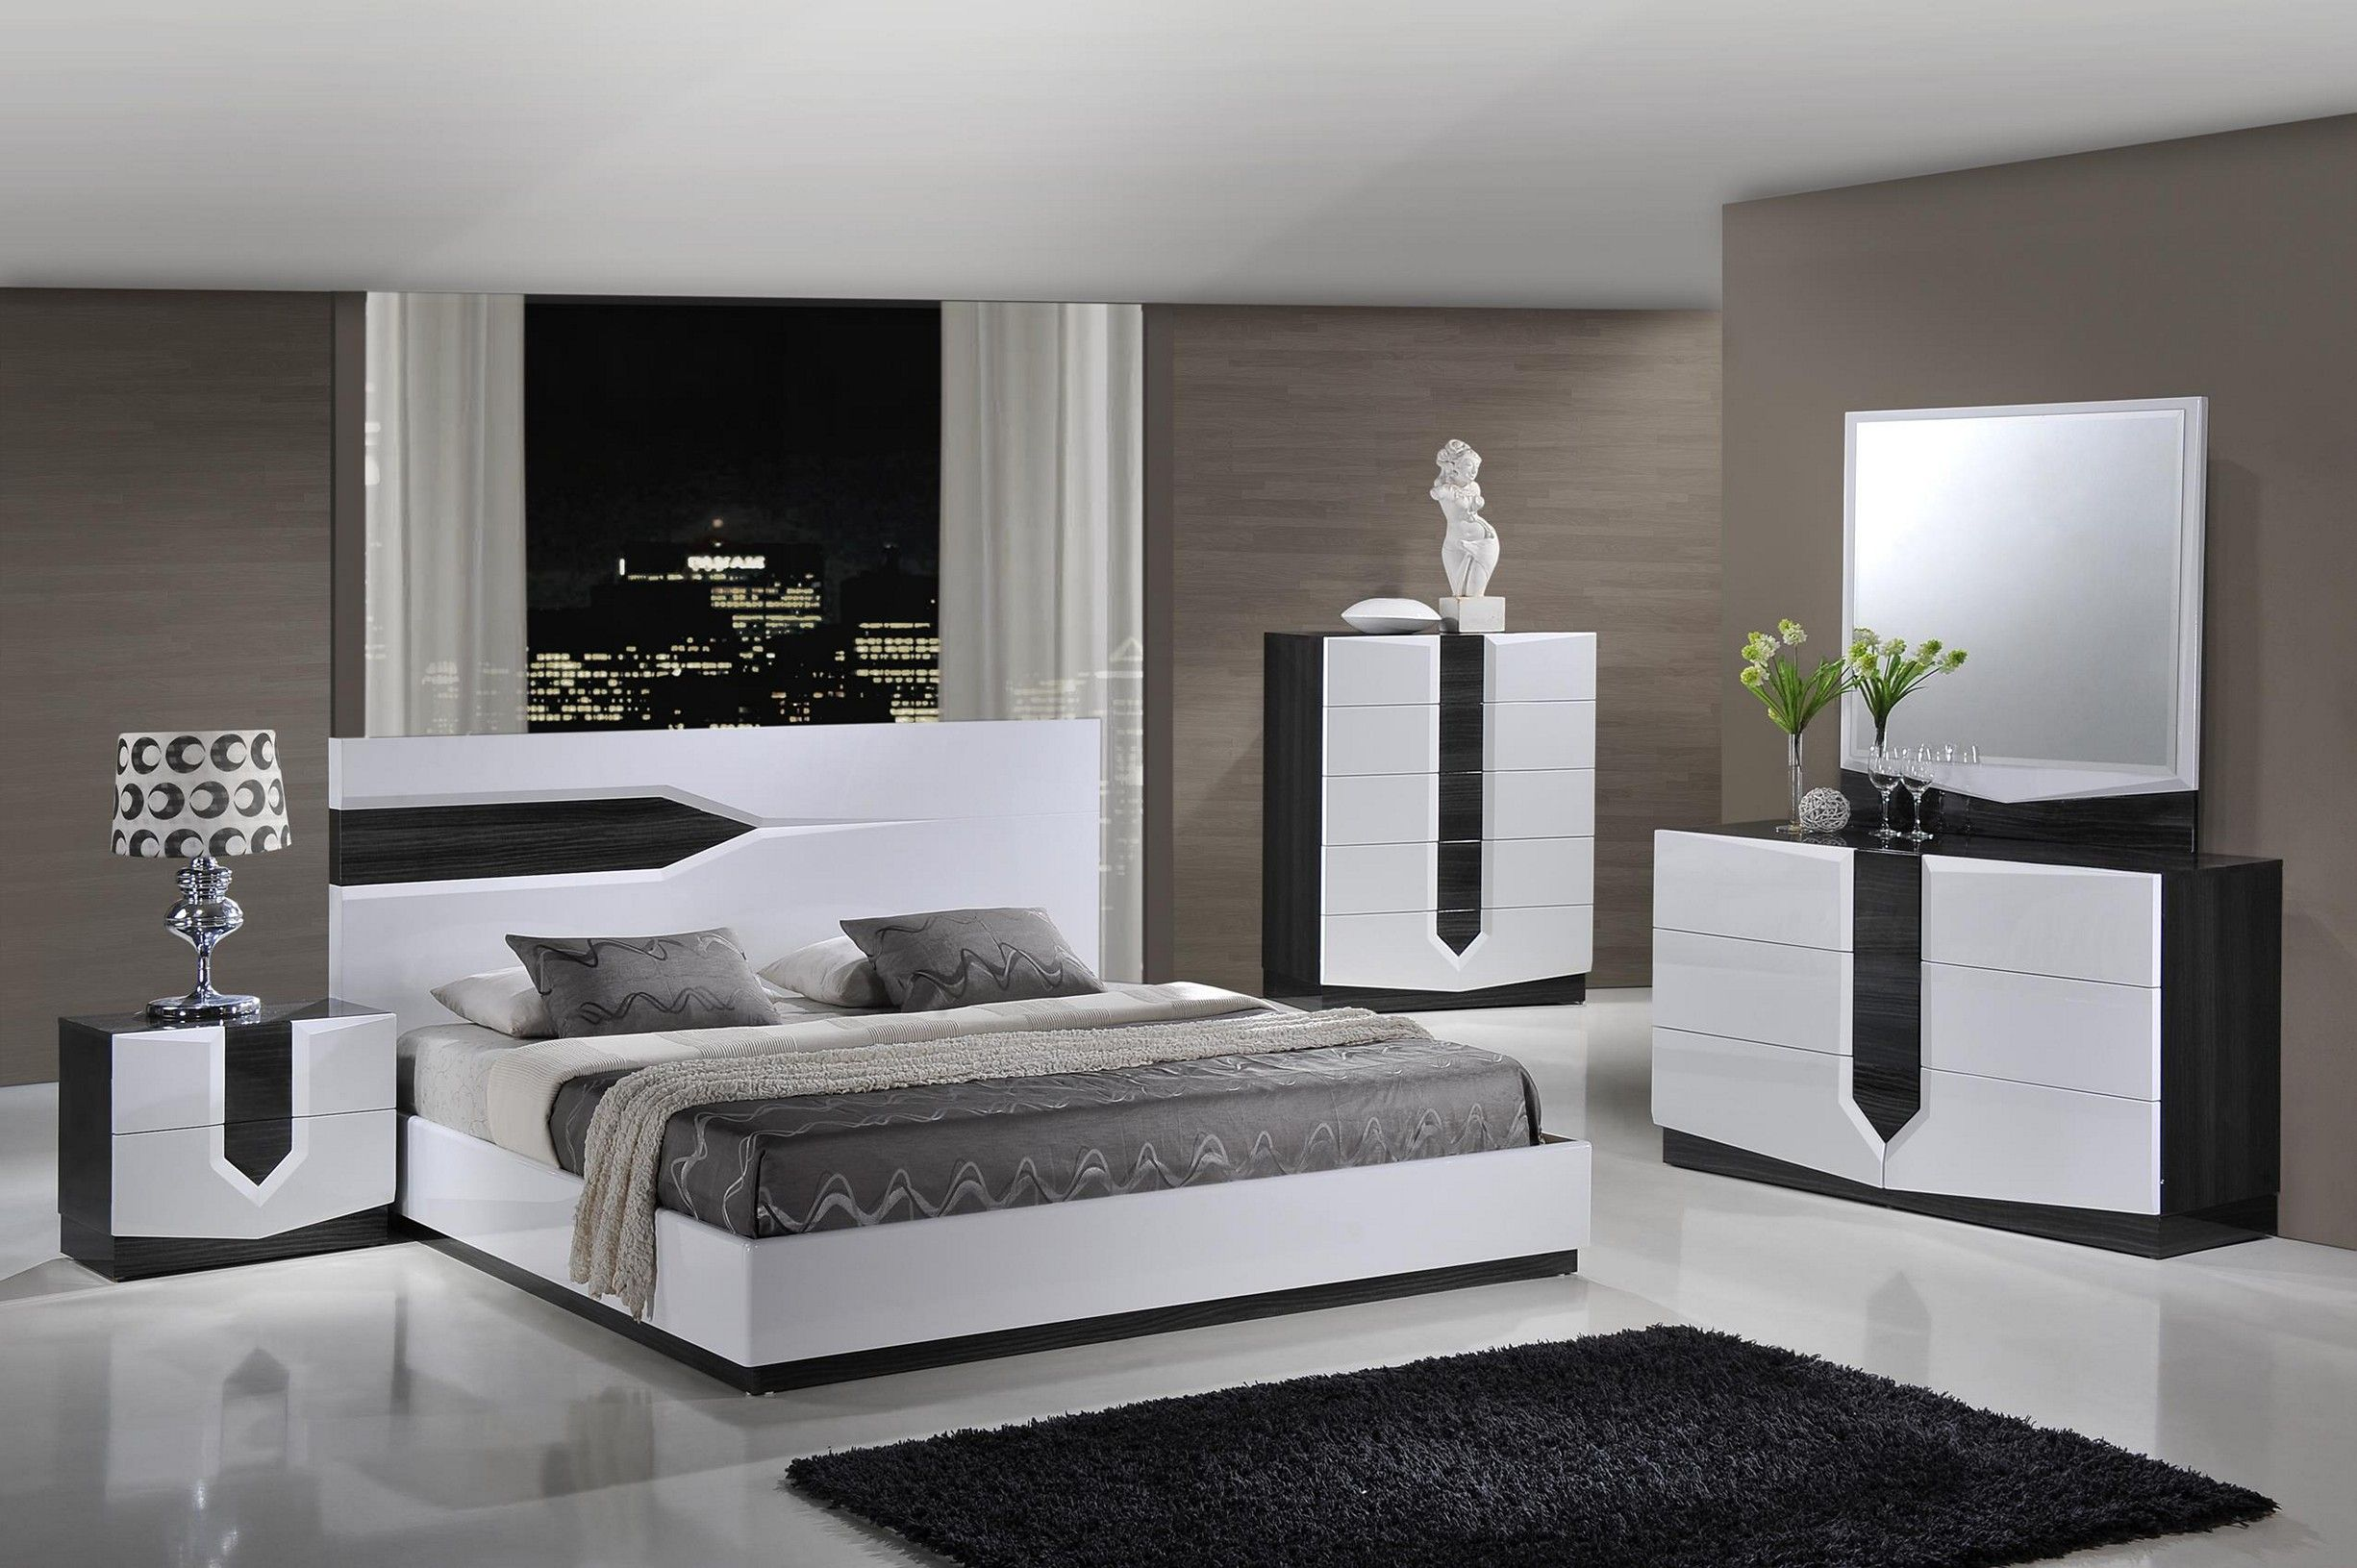 Piece Bedroom Set In Zebra Grey And White High Gloss In